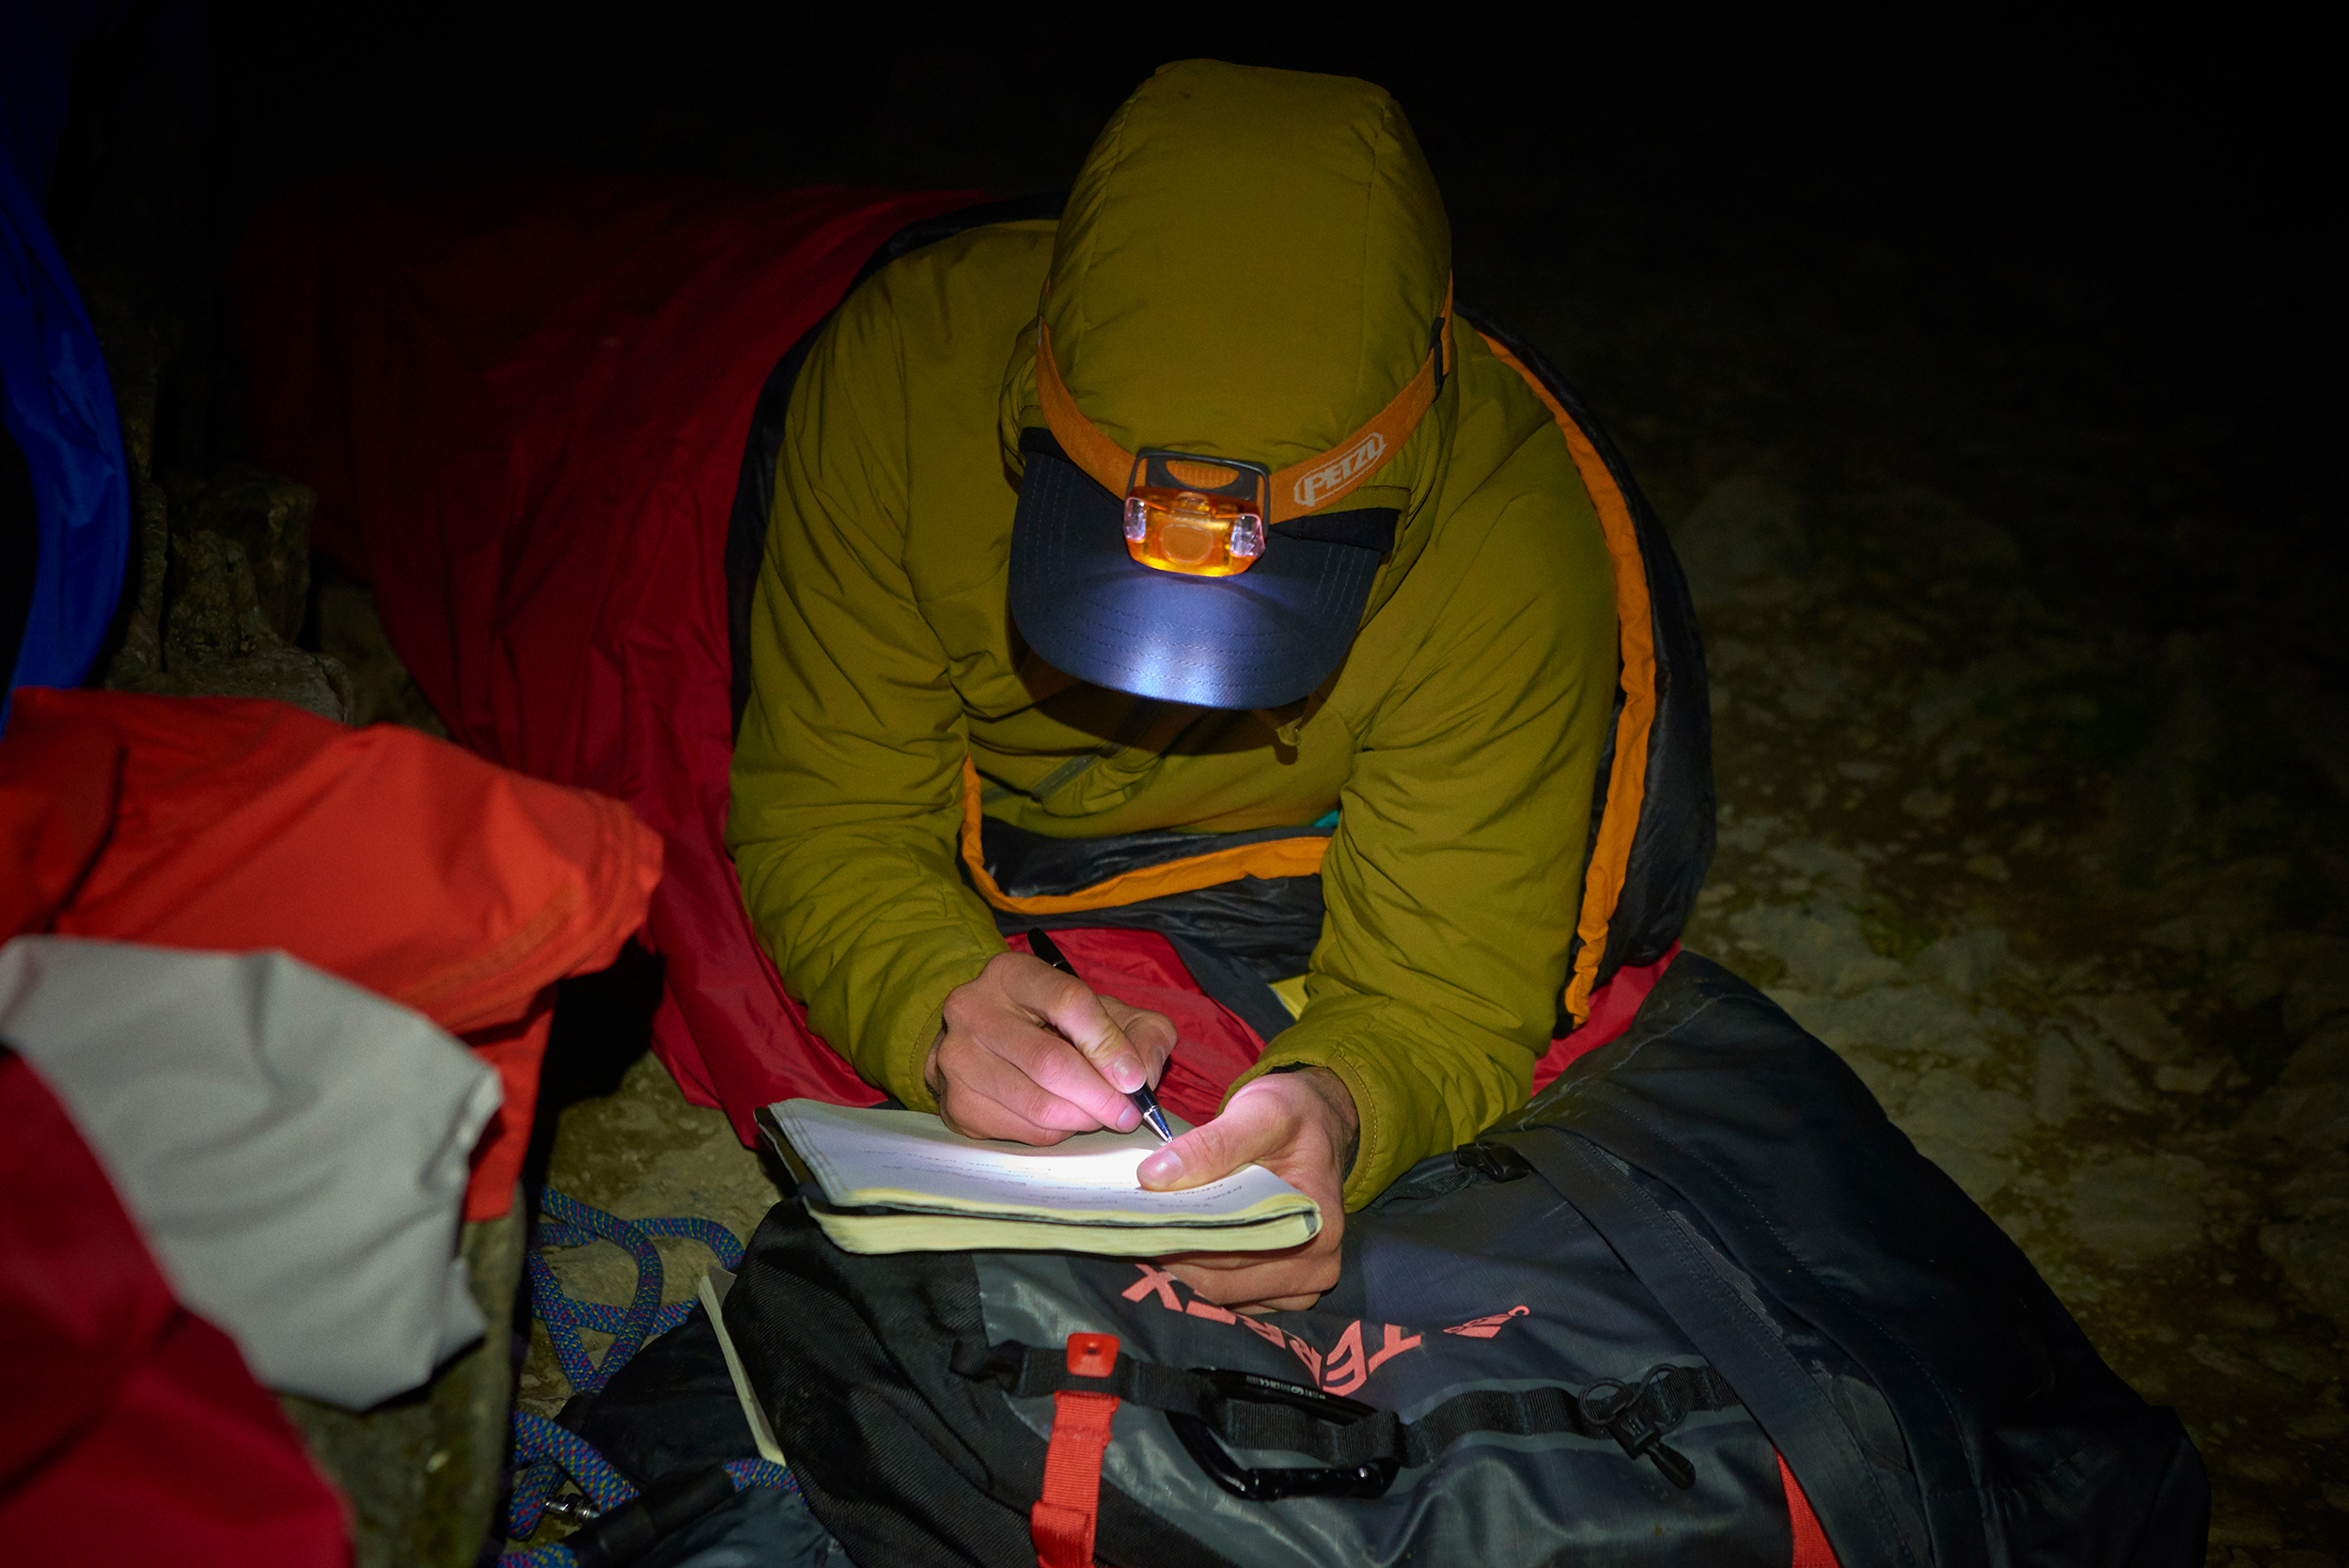 ALPKIT Hunka XL: Getting settled for the night with the right gear makes anywhere a home from home.